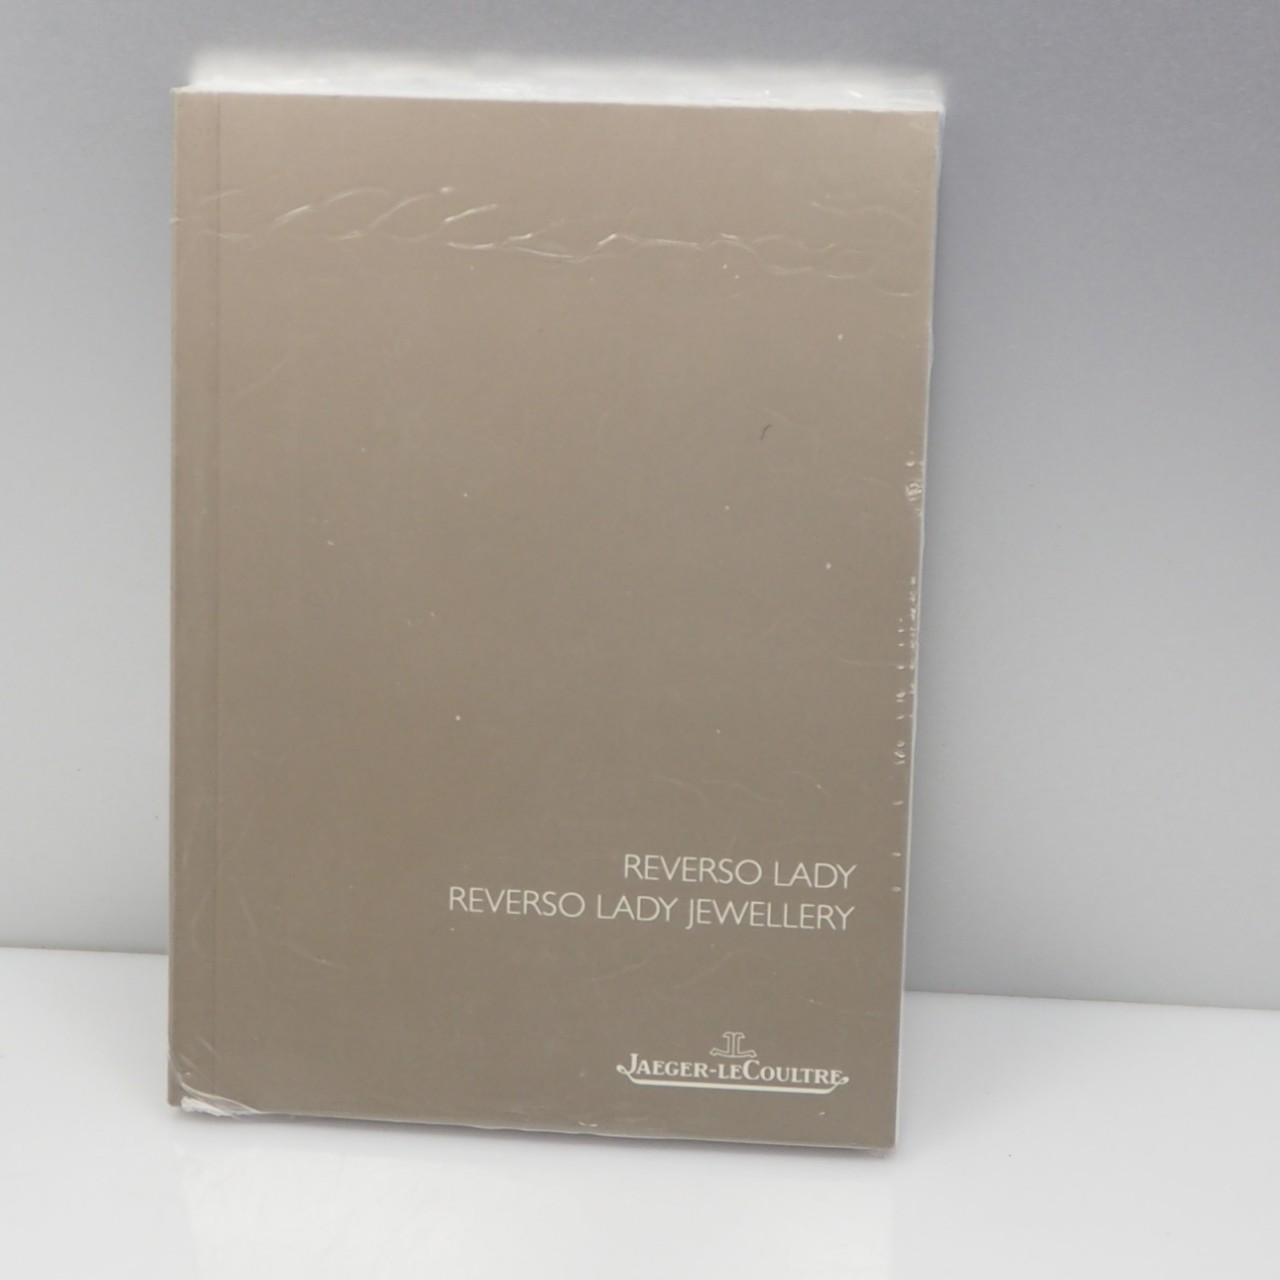 Jaeger LeCoultre Reverso Lady Jewellery Date Beschreibung / Instruction booklet 10,5 x 14,5-